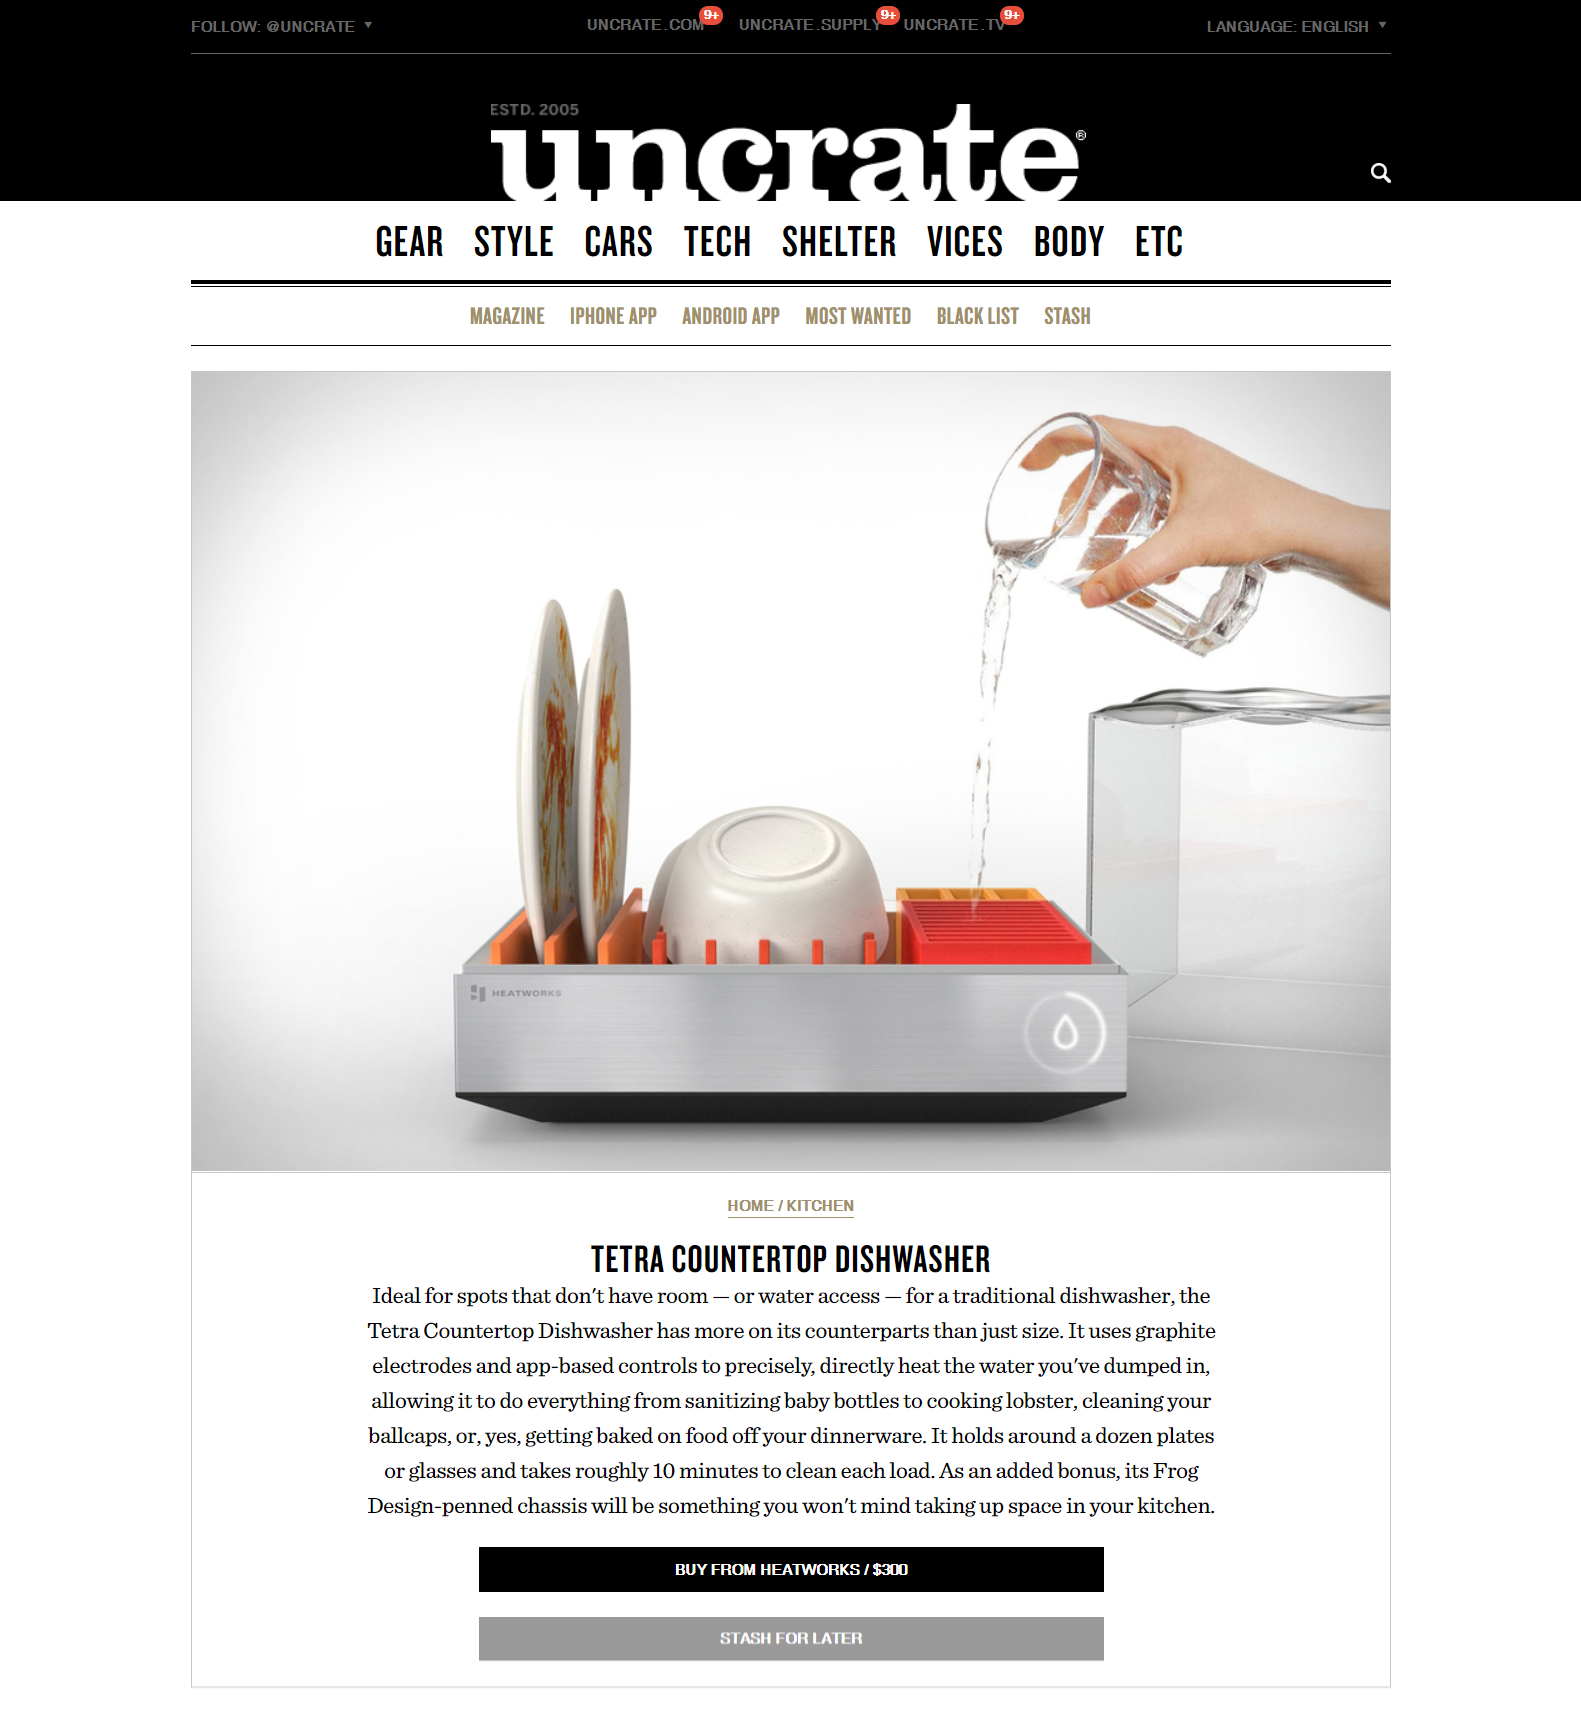 screencapture-uncrate-tetra-countertop-dishwasher-2018-05-30-17_46_36.png